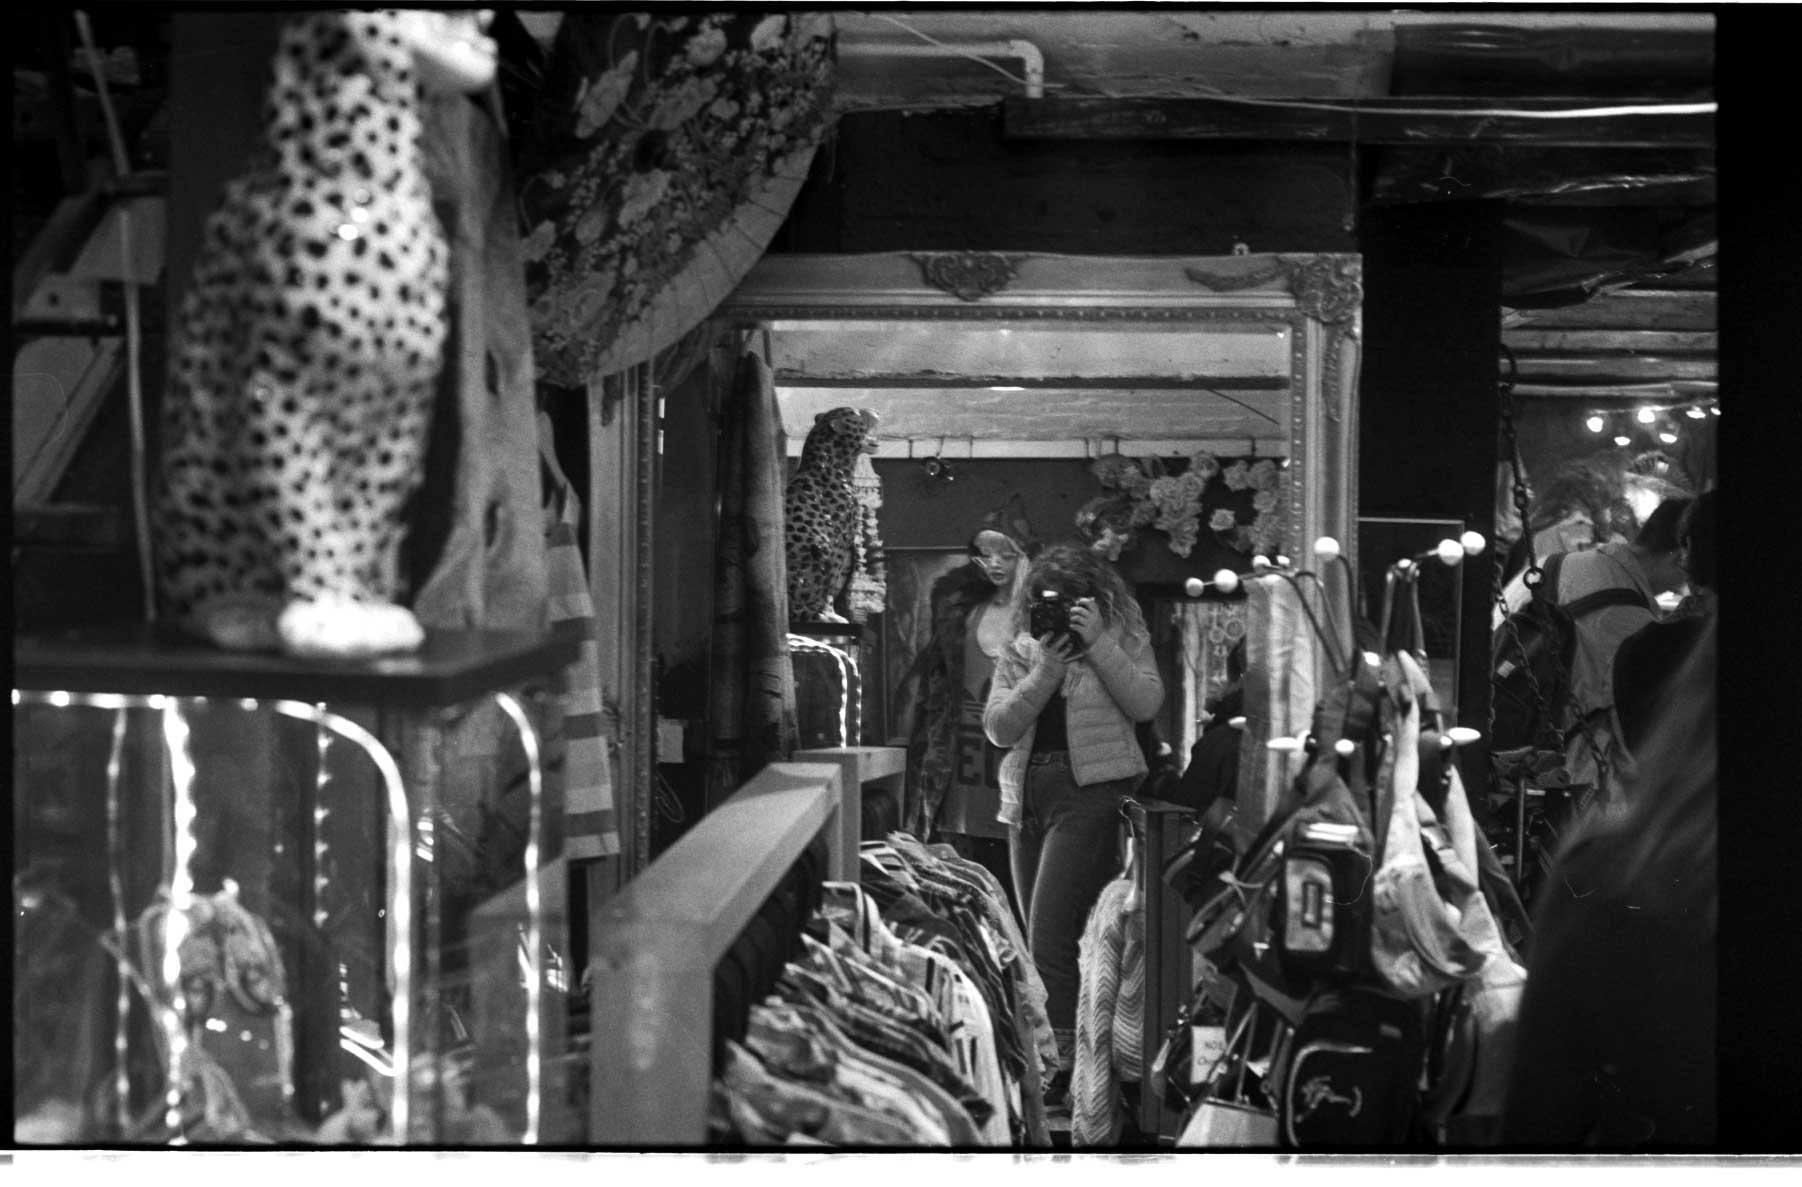 Reflection of a photographer taking a shot of crowded shop